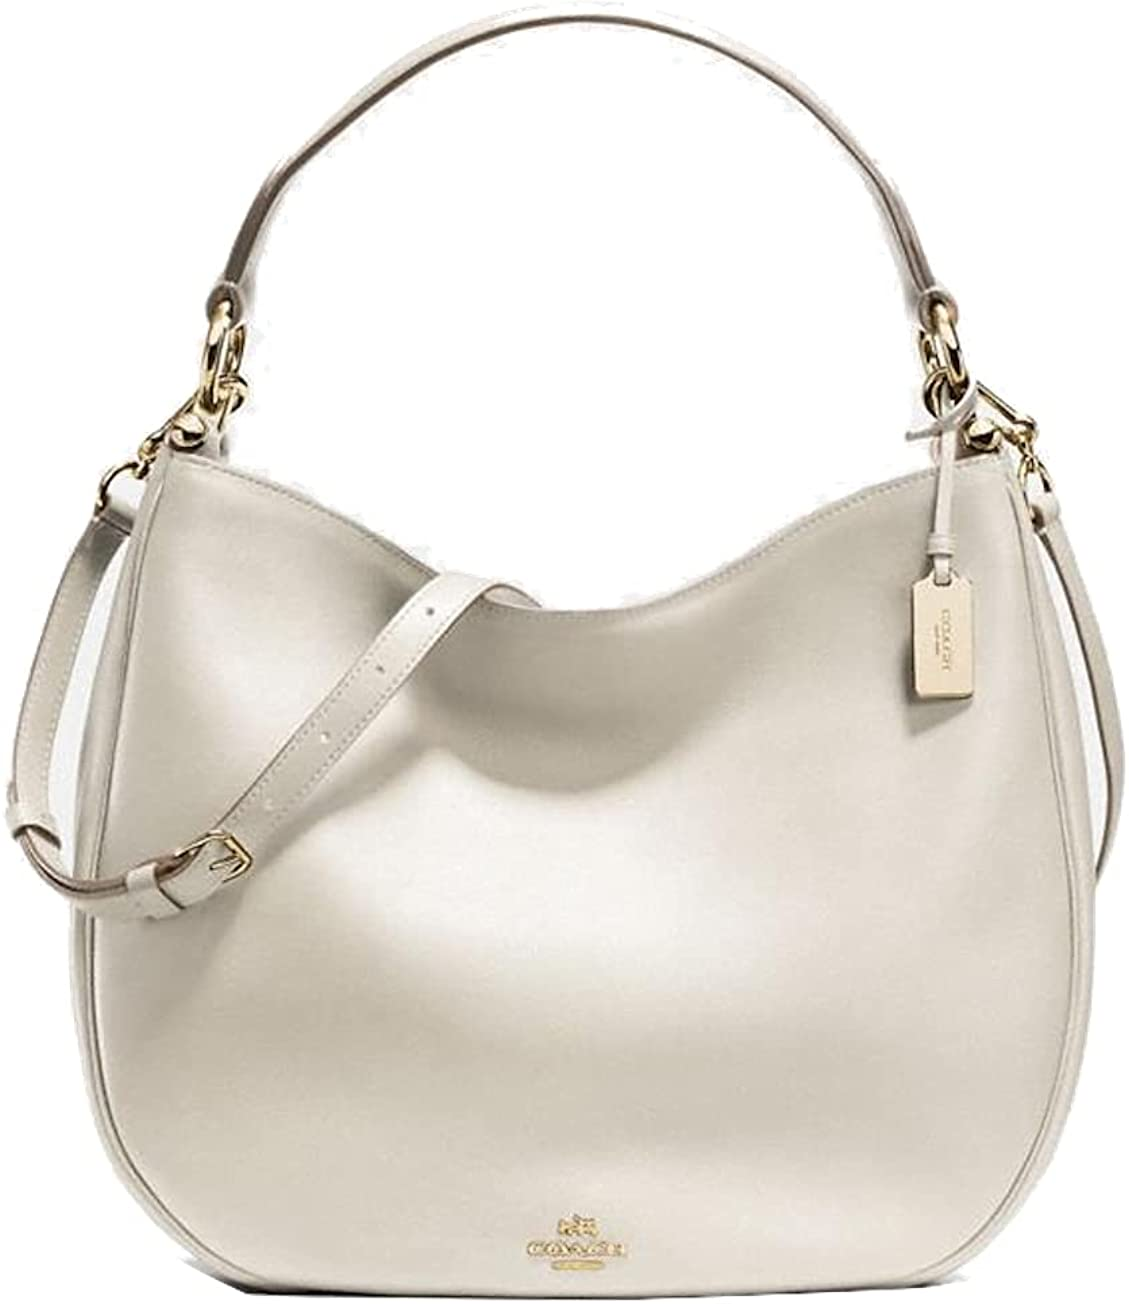 COACH NOMAD HOBO IN GLOVETANNED LEATHER F36026, CHALK